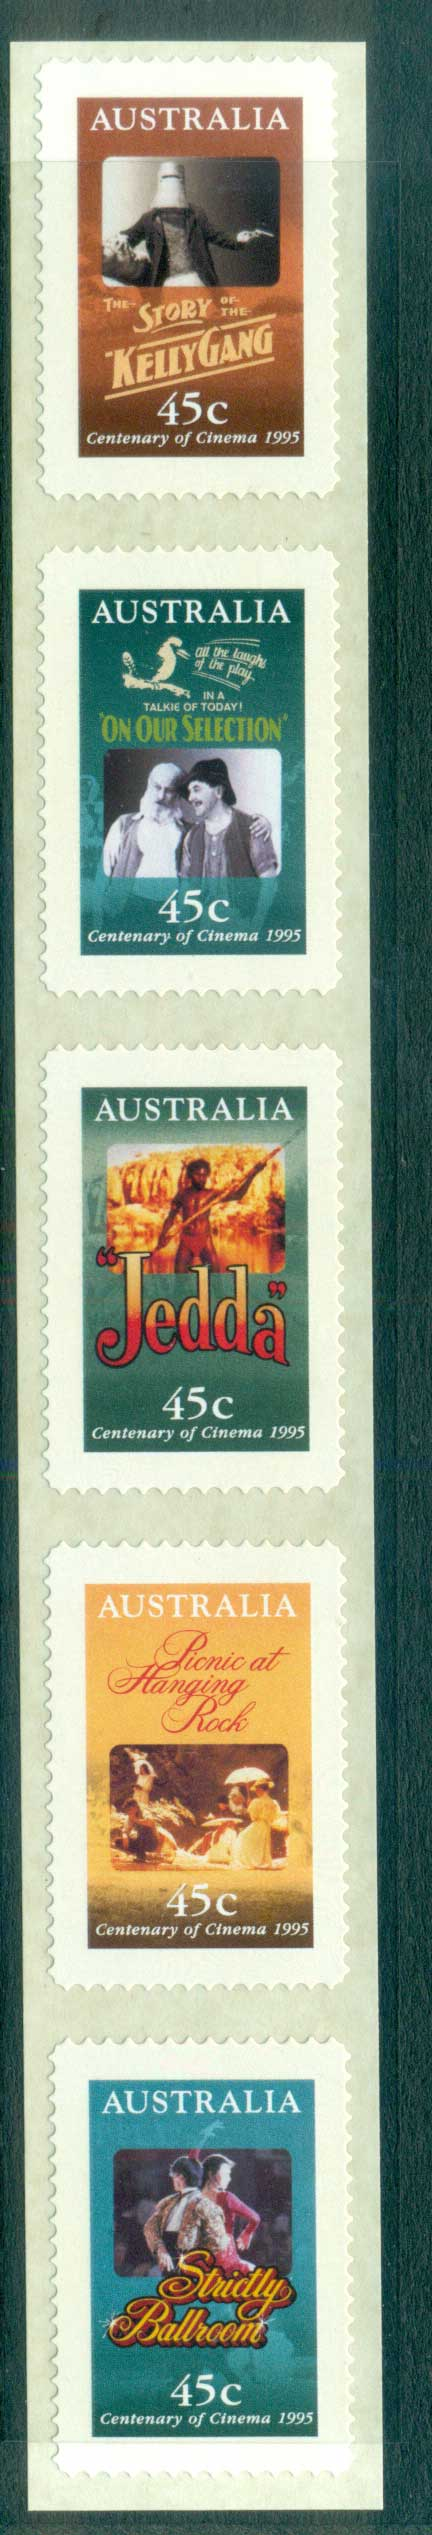 Australia 1995 Cinema Str 5 P&S MUH lot63502